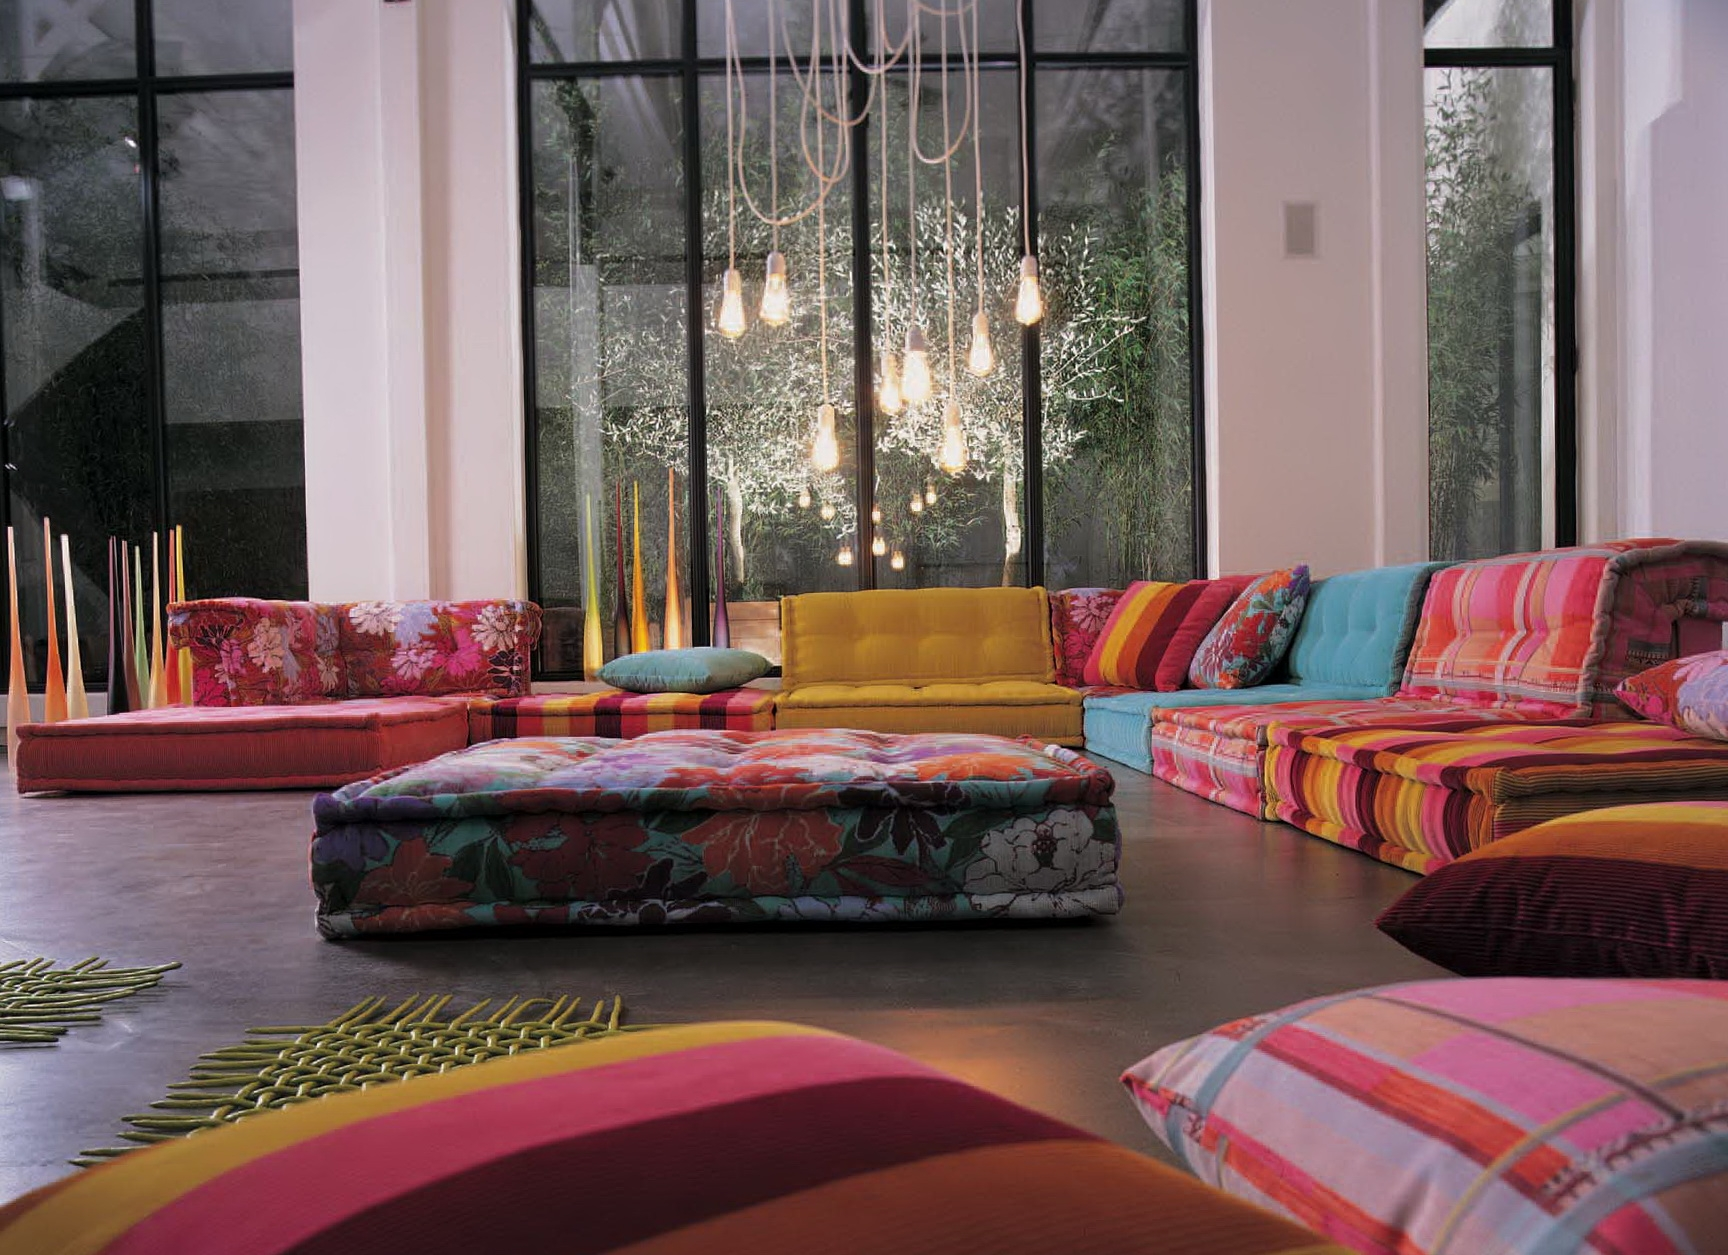 Excellent Floor Cushion Sofa Images Decoration Inspiration Tikspor For Moroccan Style Floor Seating (Photo 14 of 15)